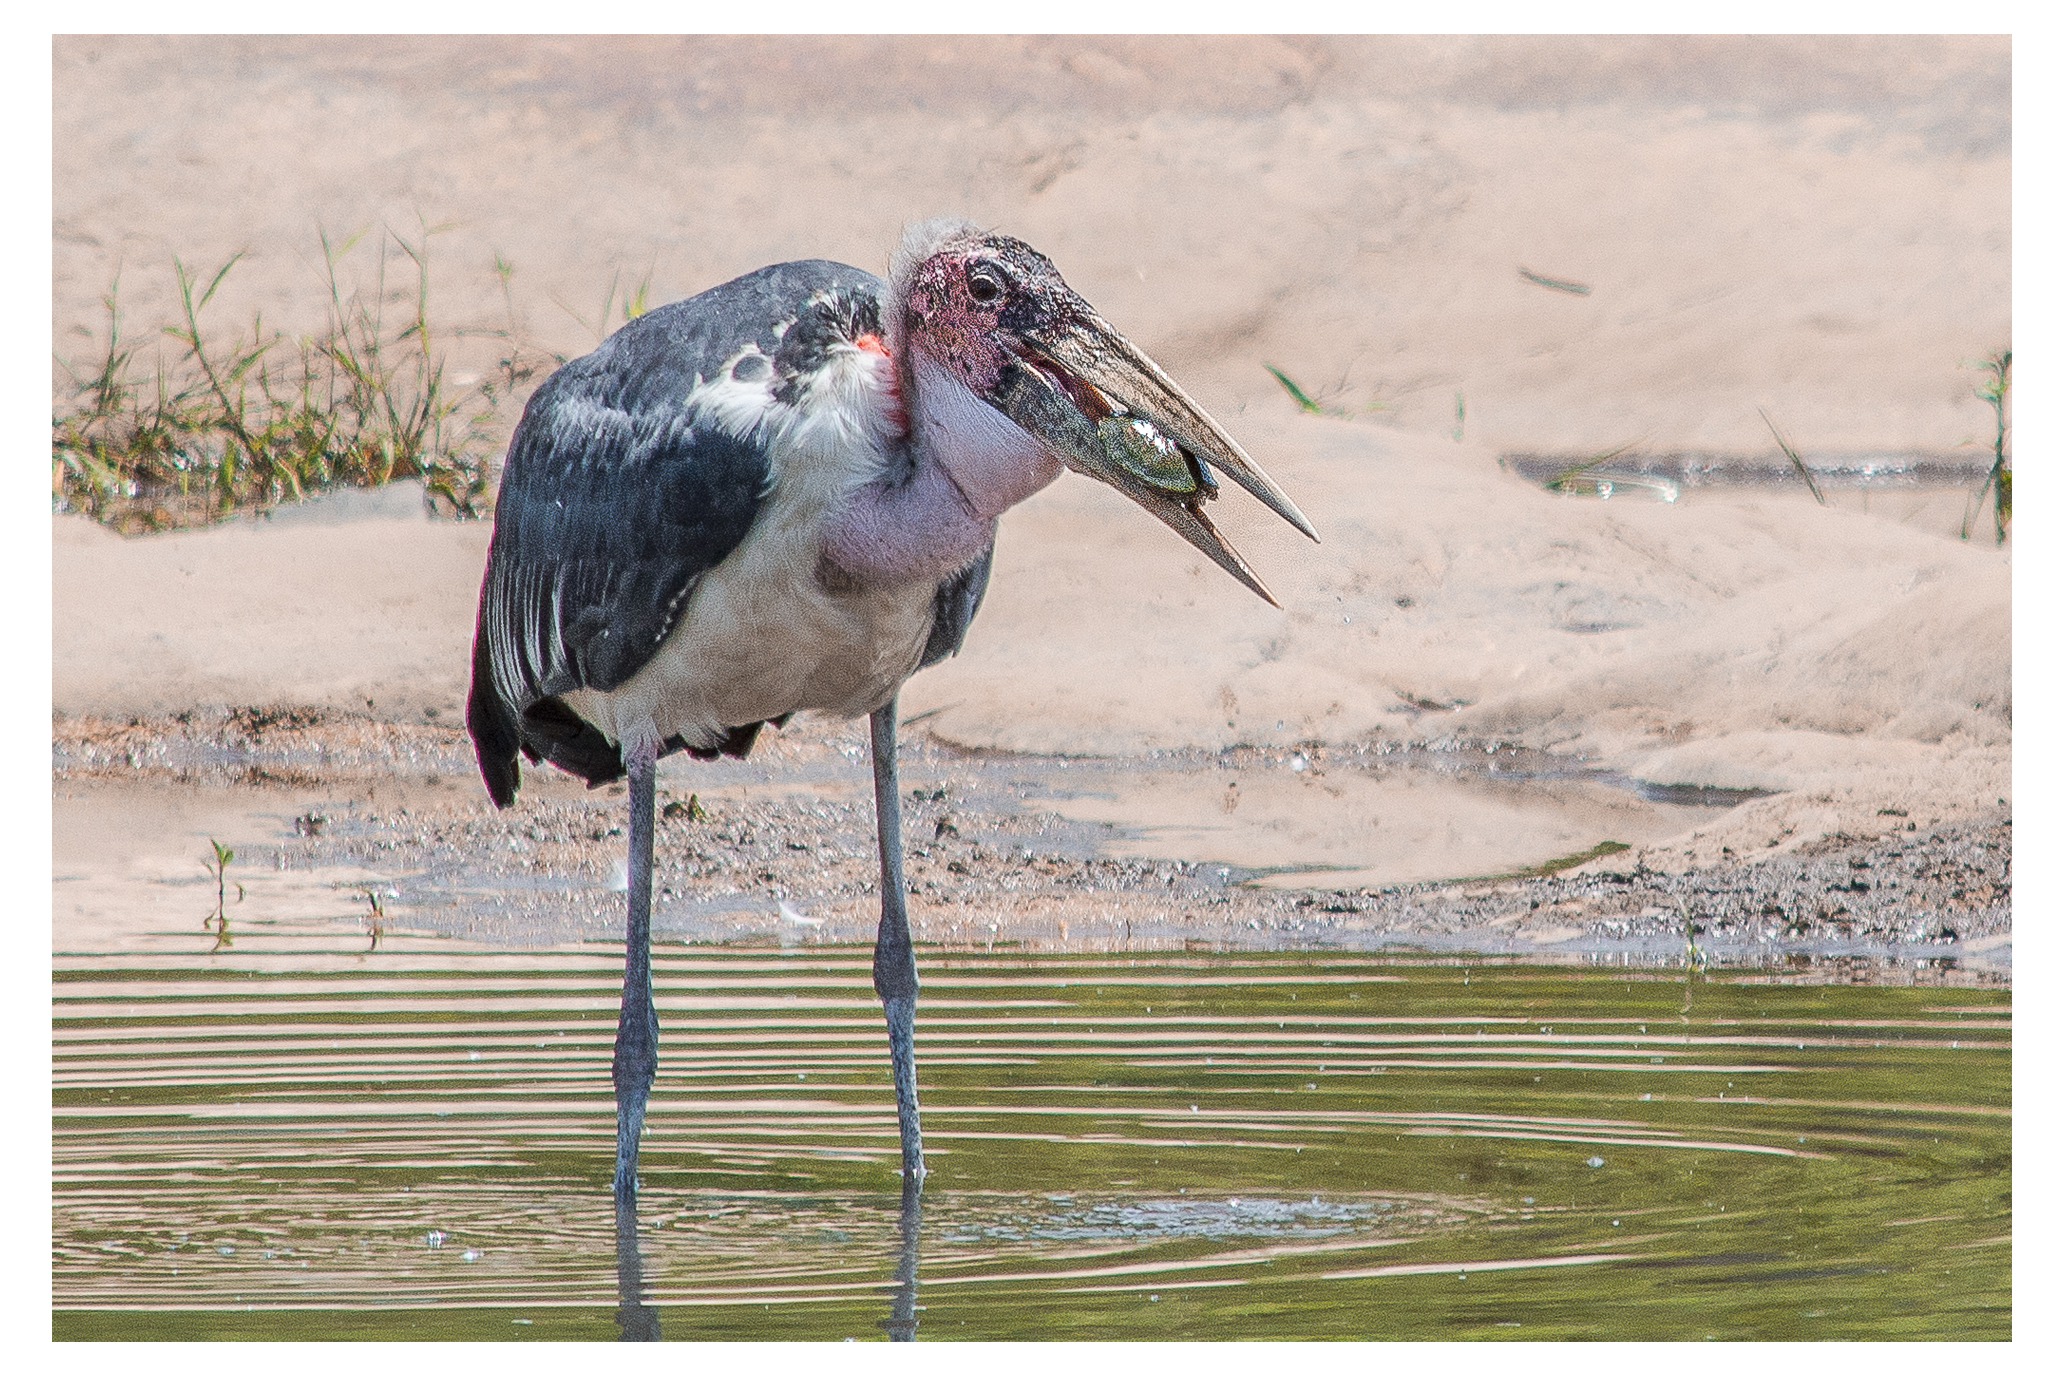 Maribou Stork trying to eat a turtle